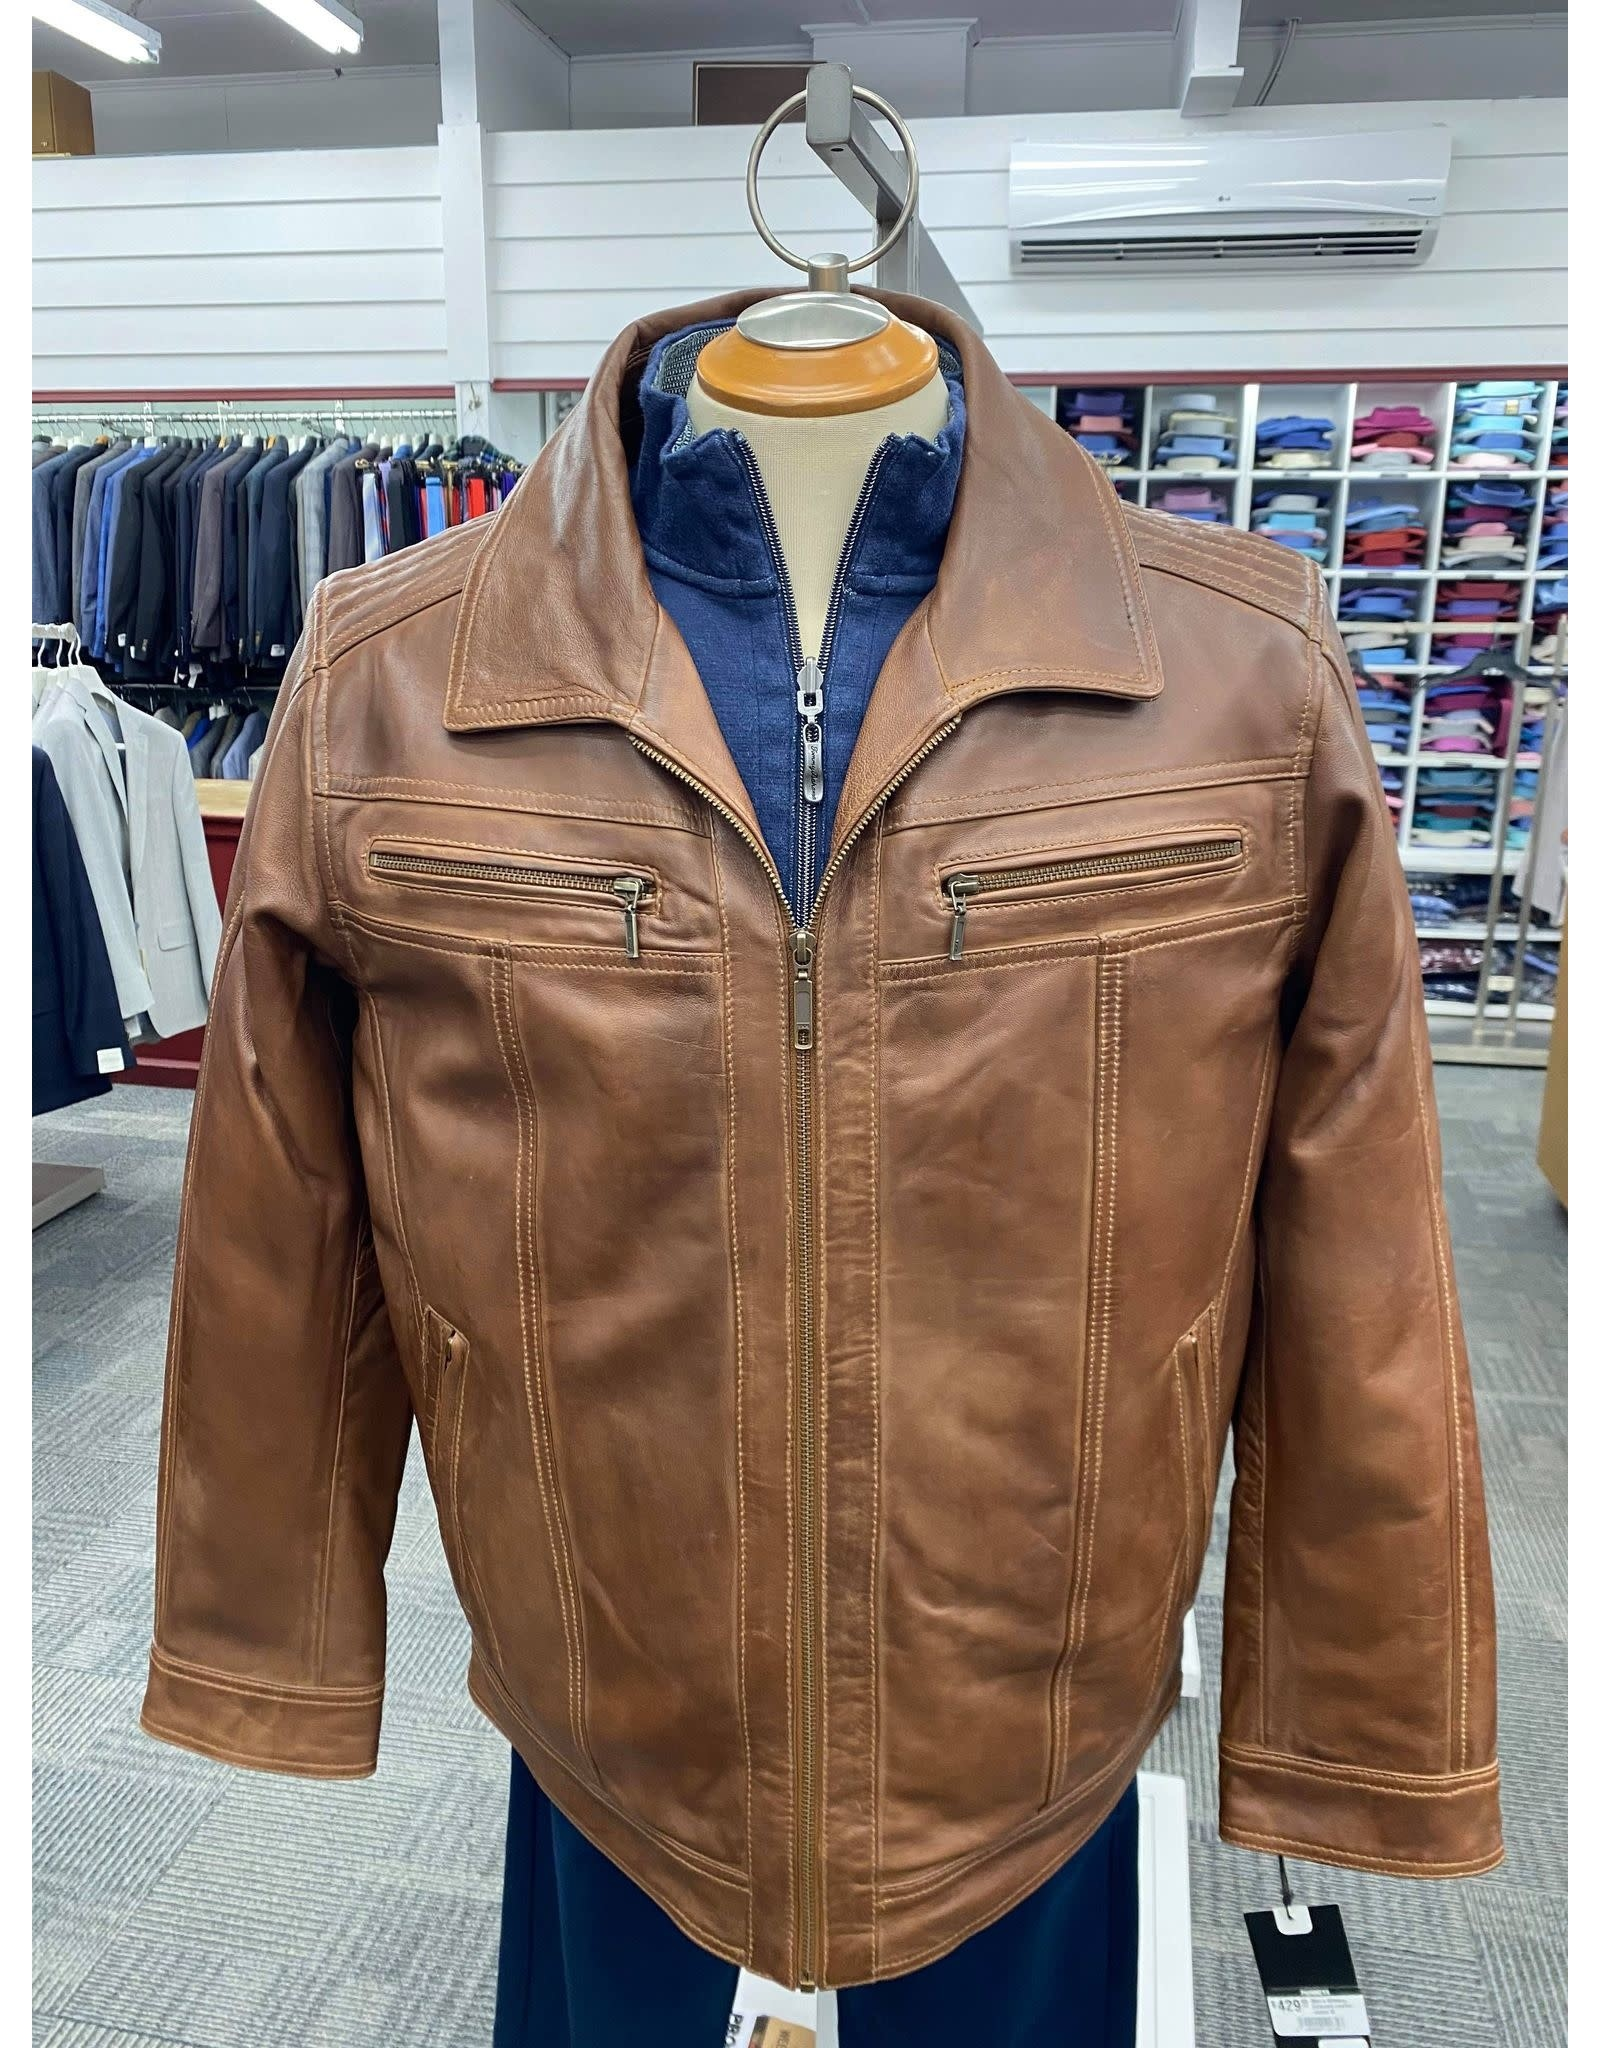 Plonge Men's Whiskey Coloured Leather Jacket